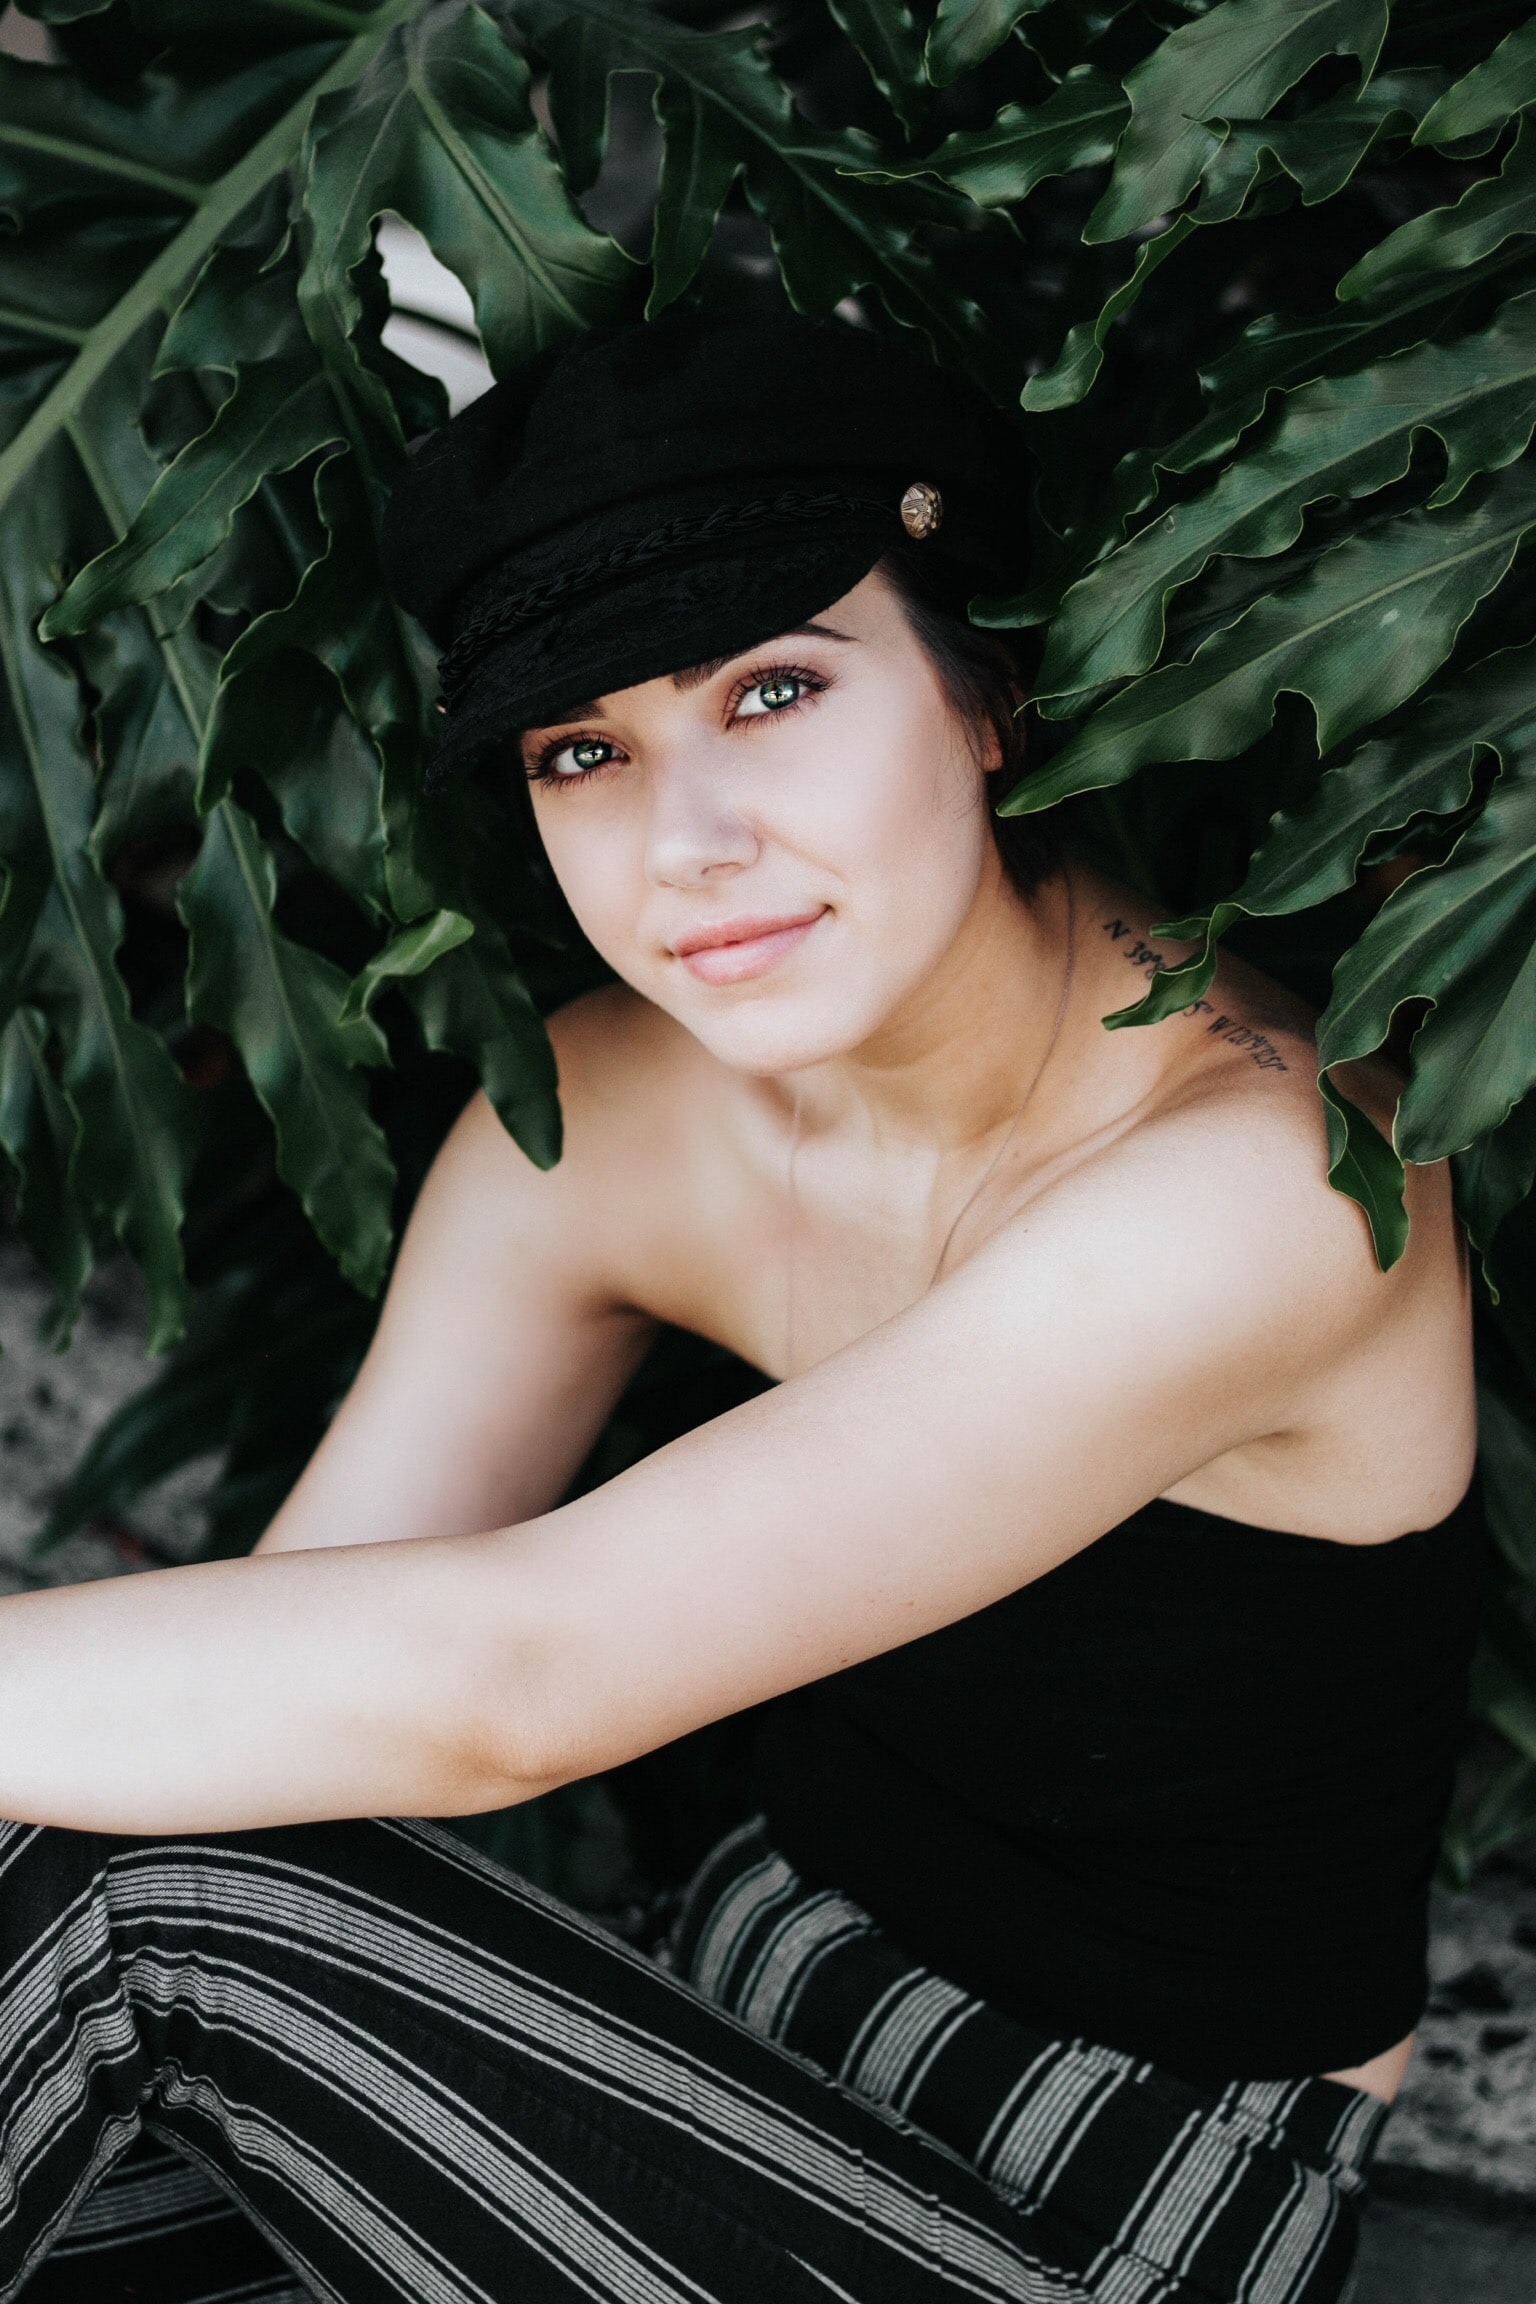 smiling woman in black strapless top and black and white striped pants